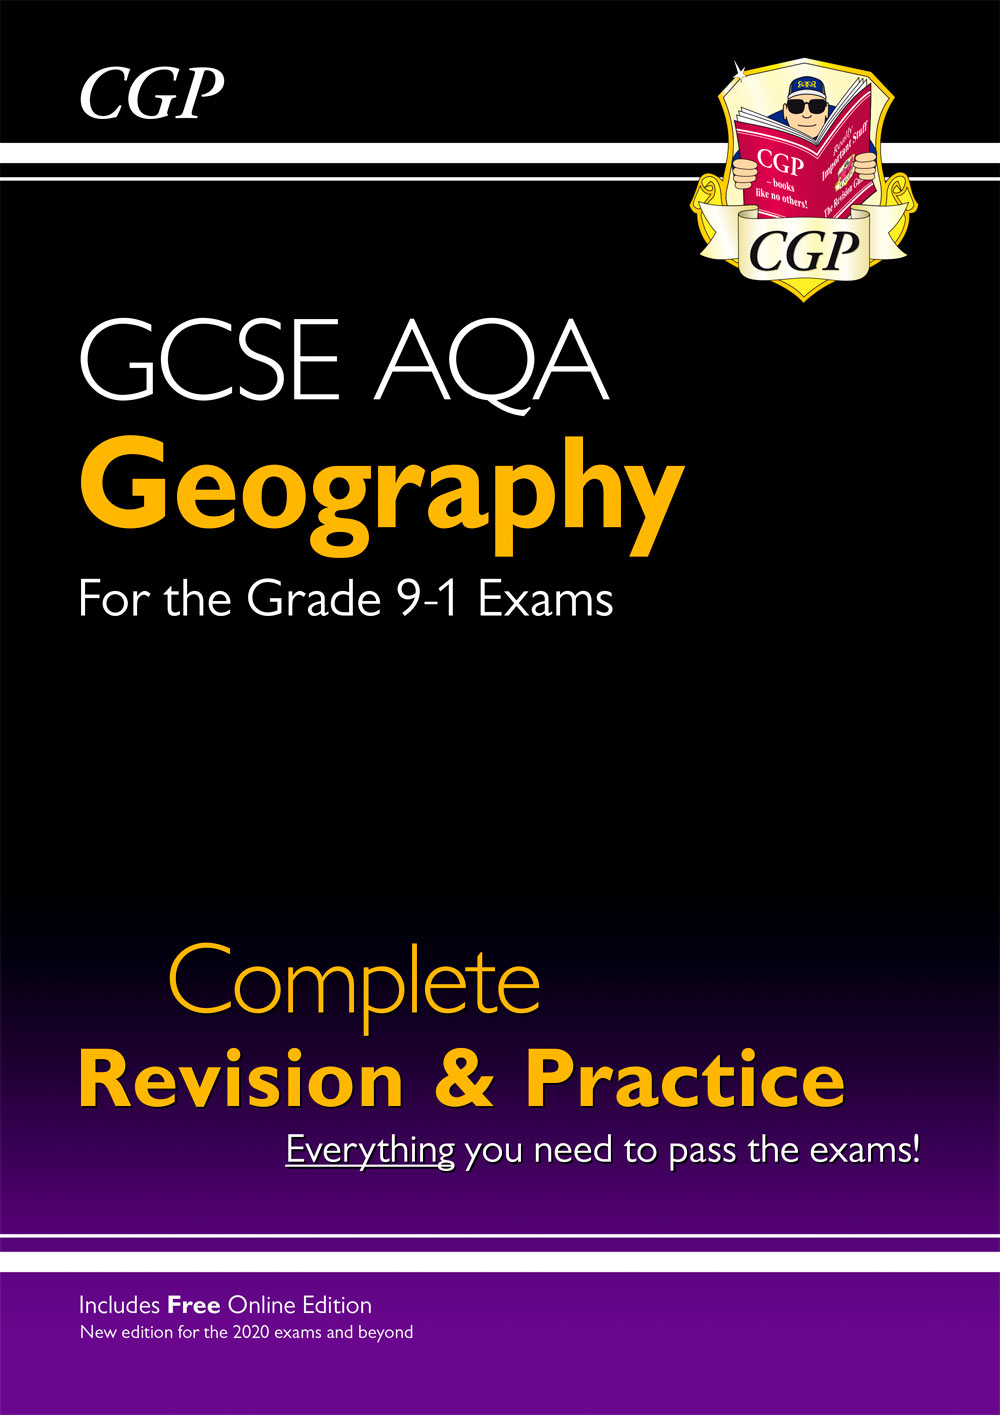 GAS42 - New GCSE 9-1 Geography AQA Complete Revision & Practice (w/ Online Ed) - New for 2020 exams